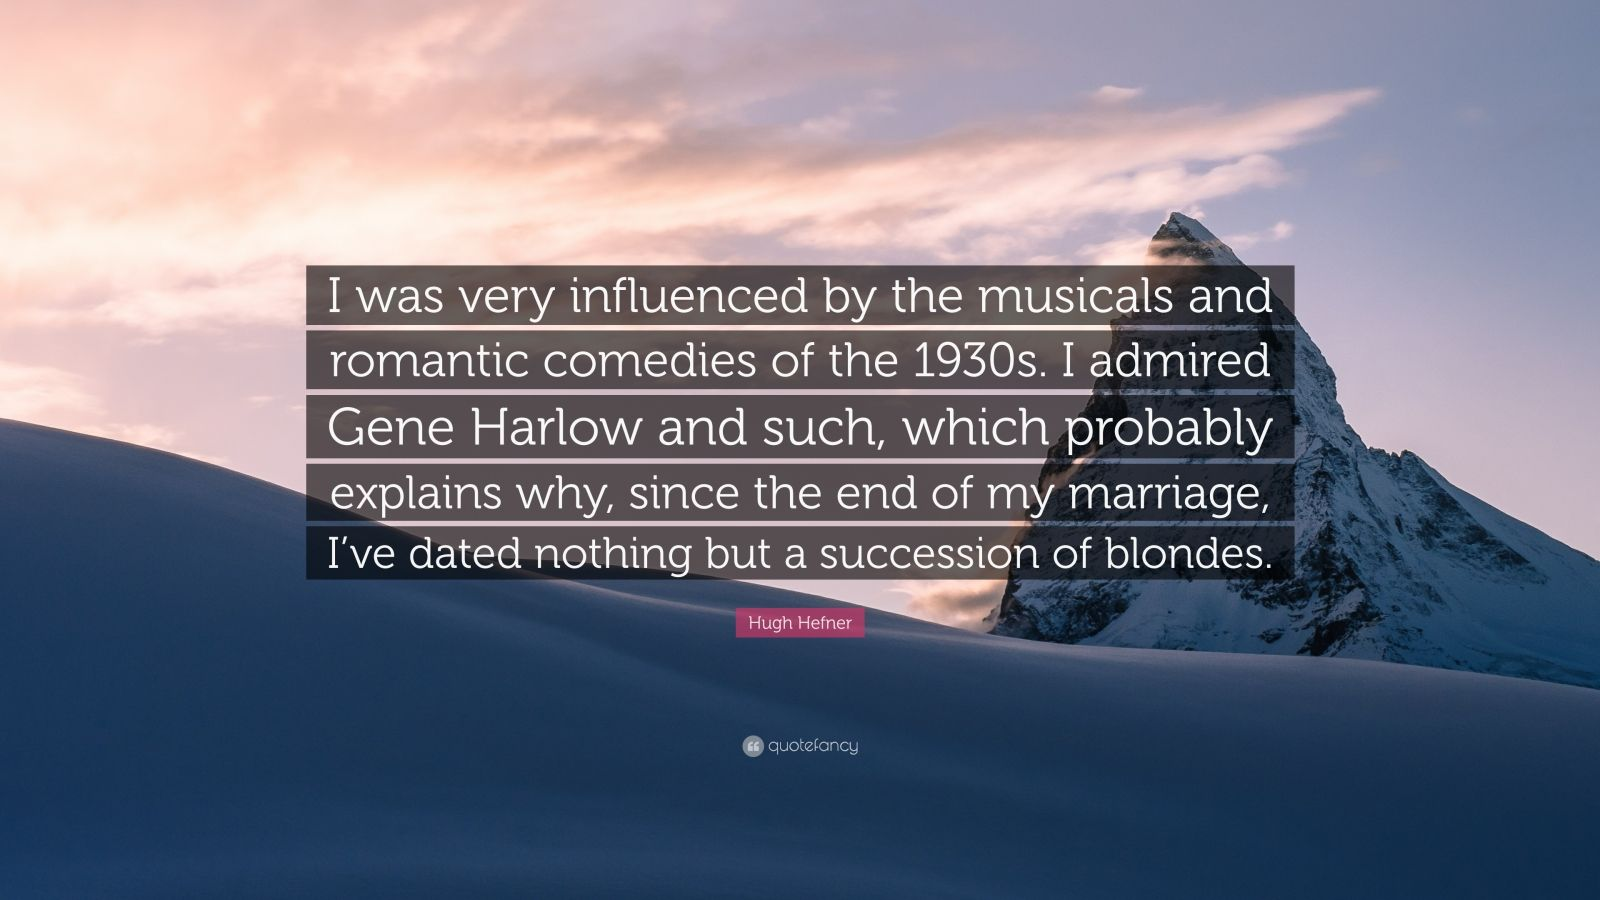 """Hugh Hefner Quote: """"I was very influenced by the musicals and romantic comedies of the 1930s. I admired Gene Harlow and such, which probably explains why, since the end of my marriage, I've dated nothing but a succession of blondes."""""""